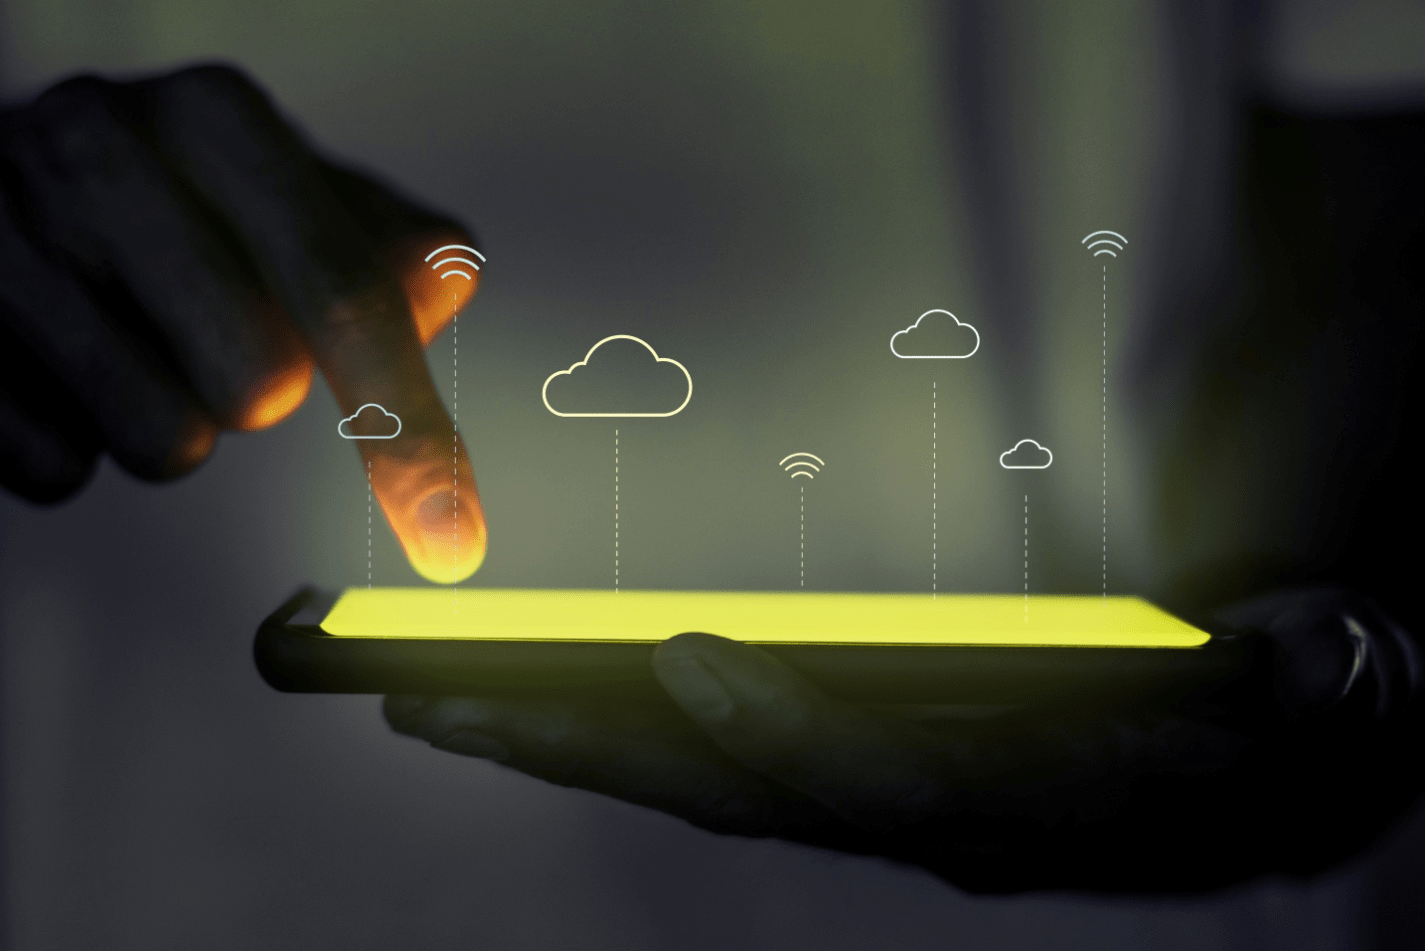 The future of Cloud Analytics